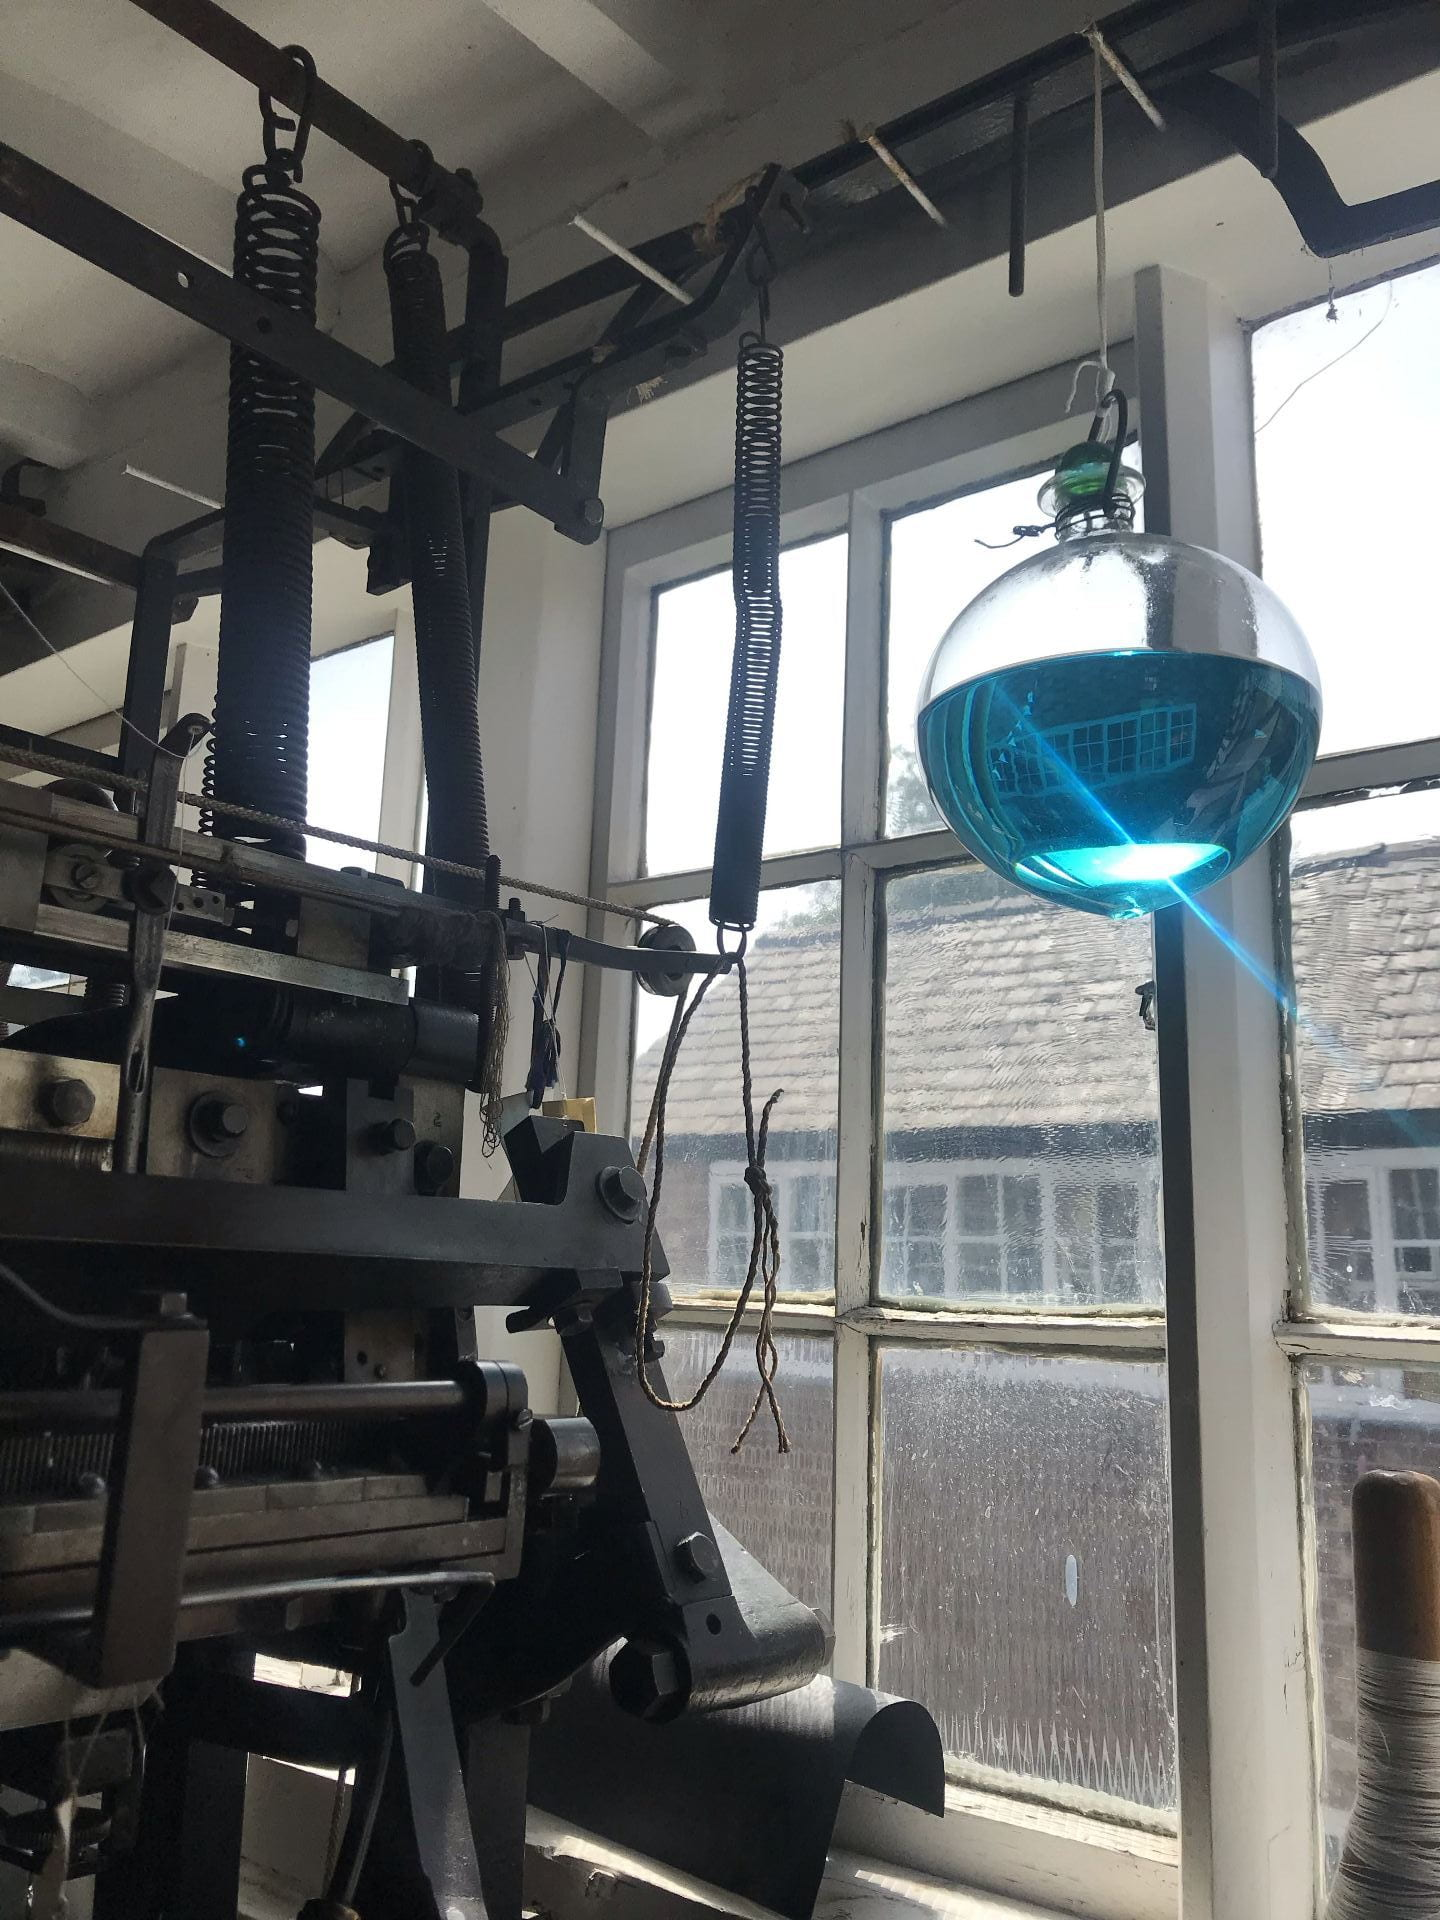 a large glass orb filled with blue water hangs over a knitting frame by a window.